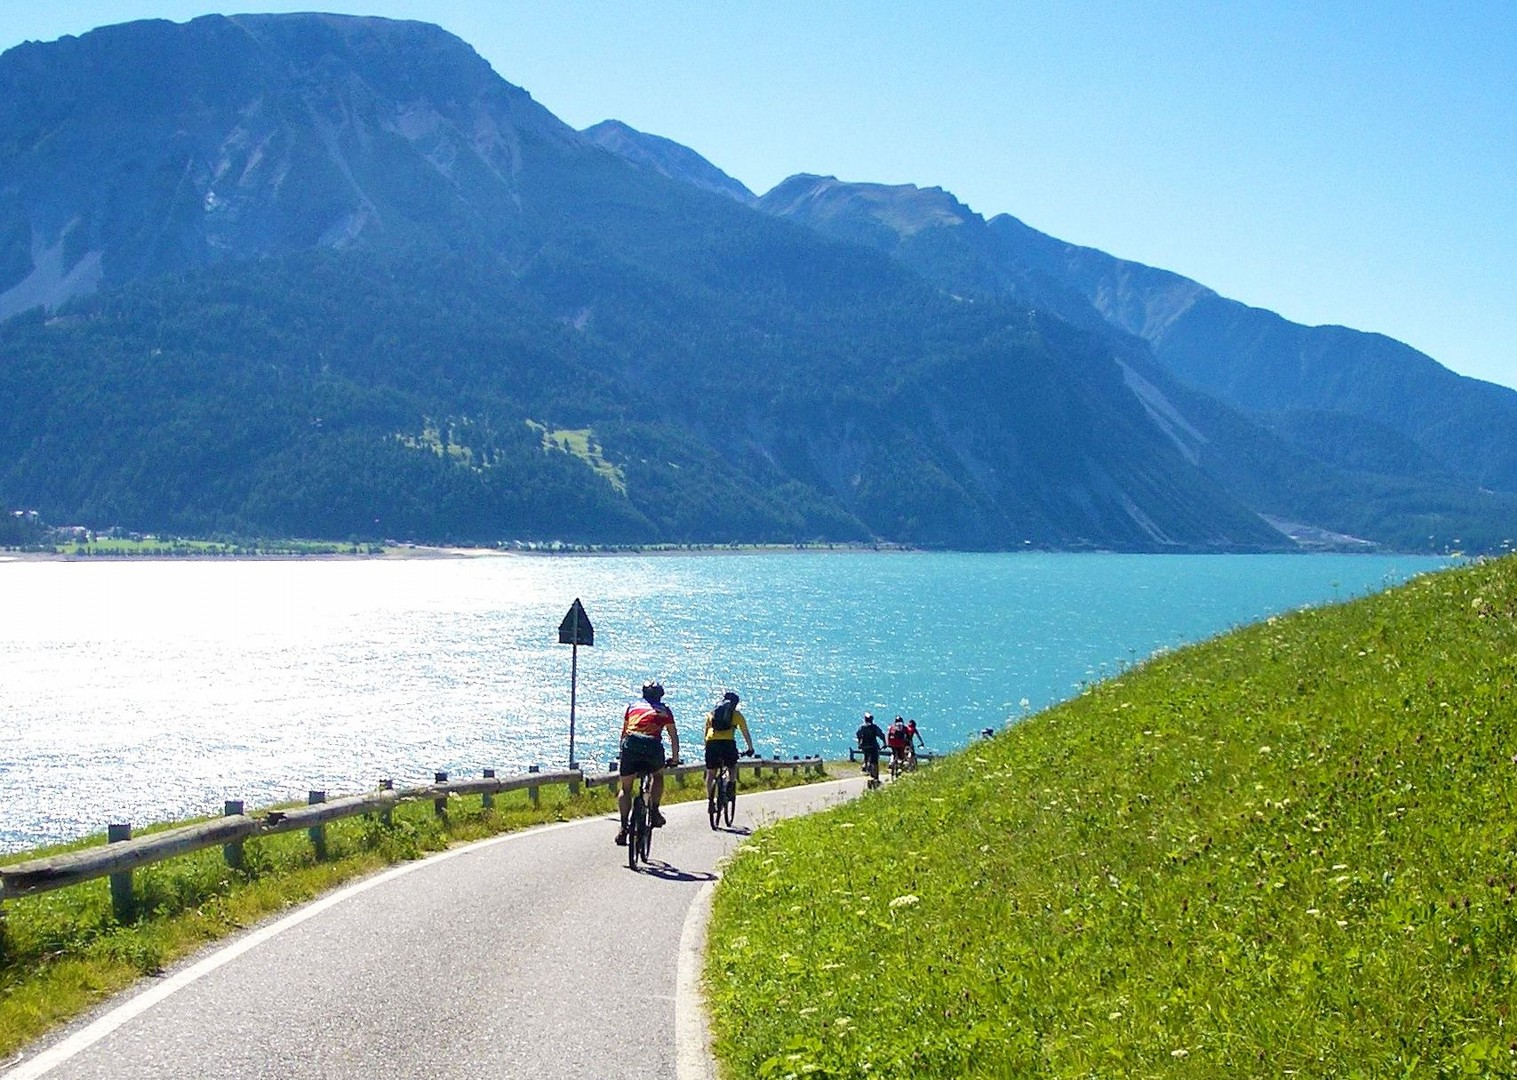 guided-cycling-adventure-la-via-claudia.jpg - Austria and Italy - La Via Claudia - Guided Leisure Cycling Holiday - Italia Leisure and Family Cycling